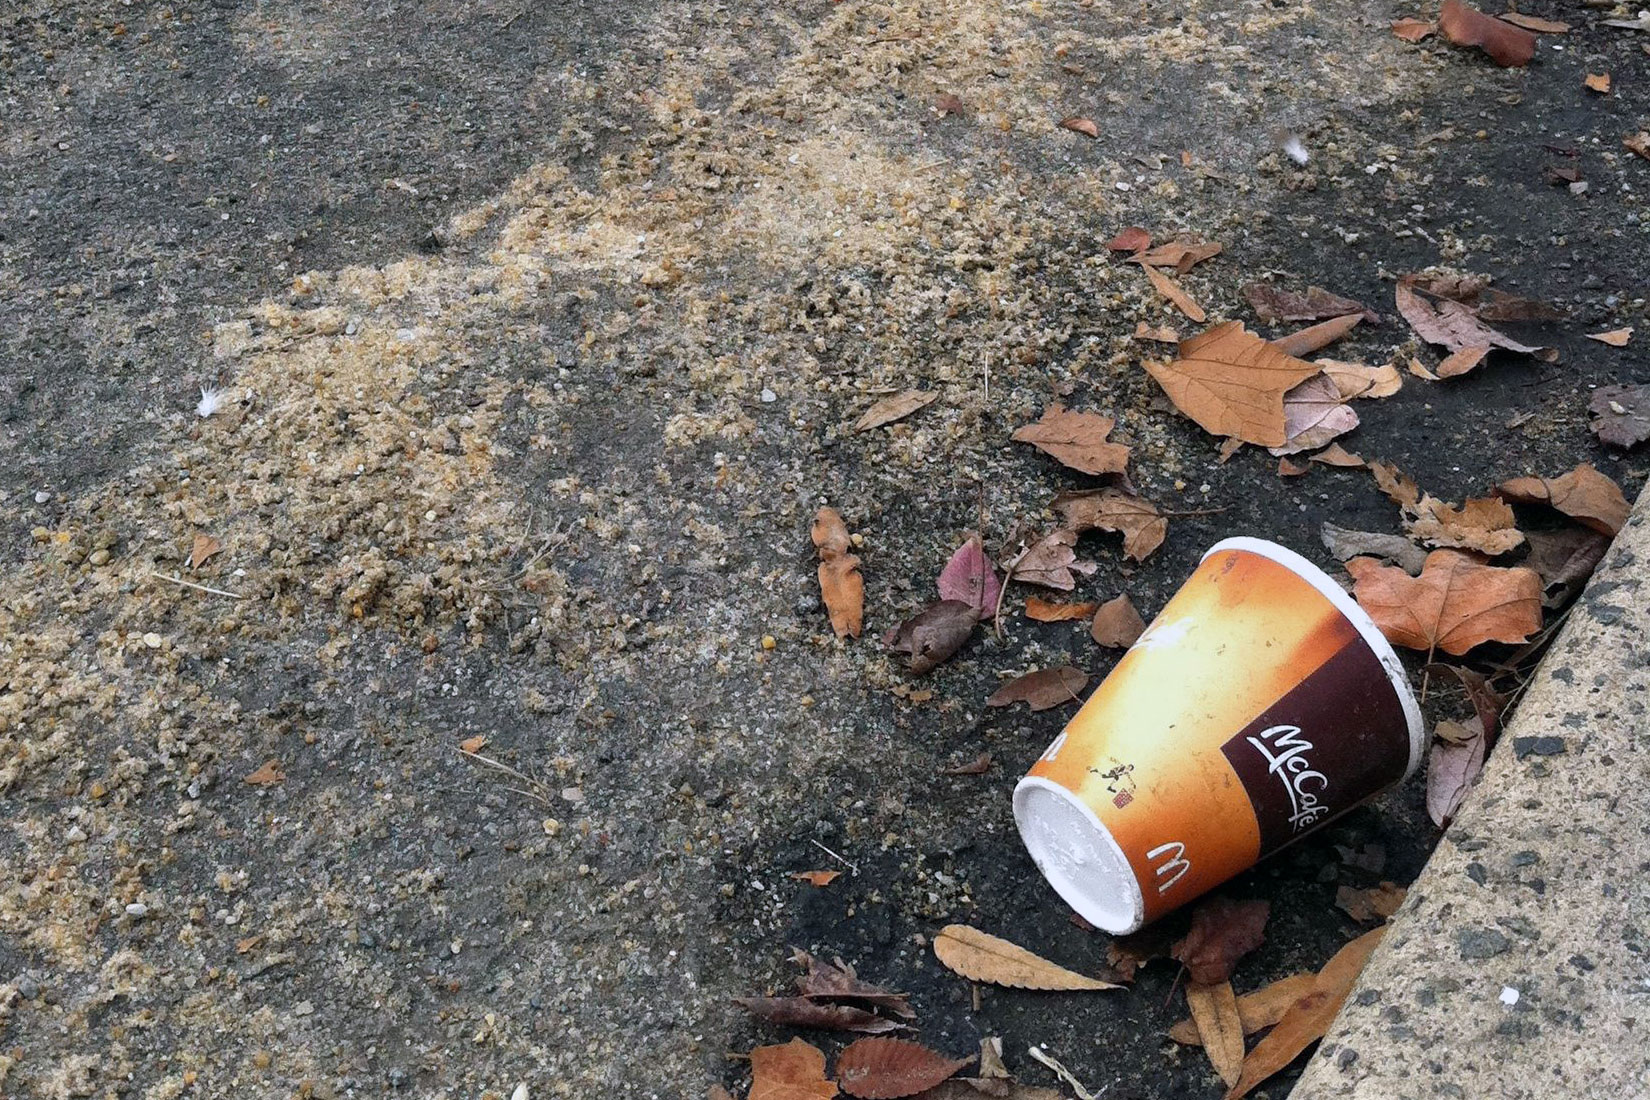 mcdonalds trashed cup